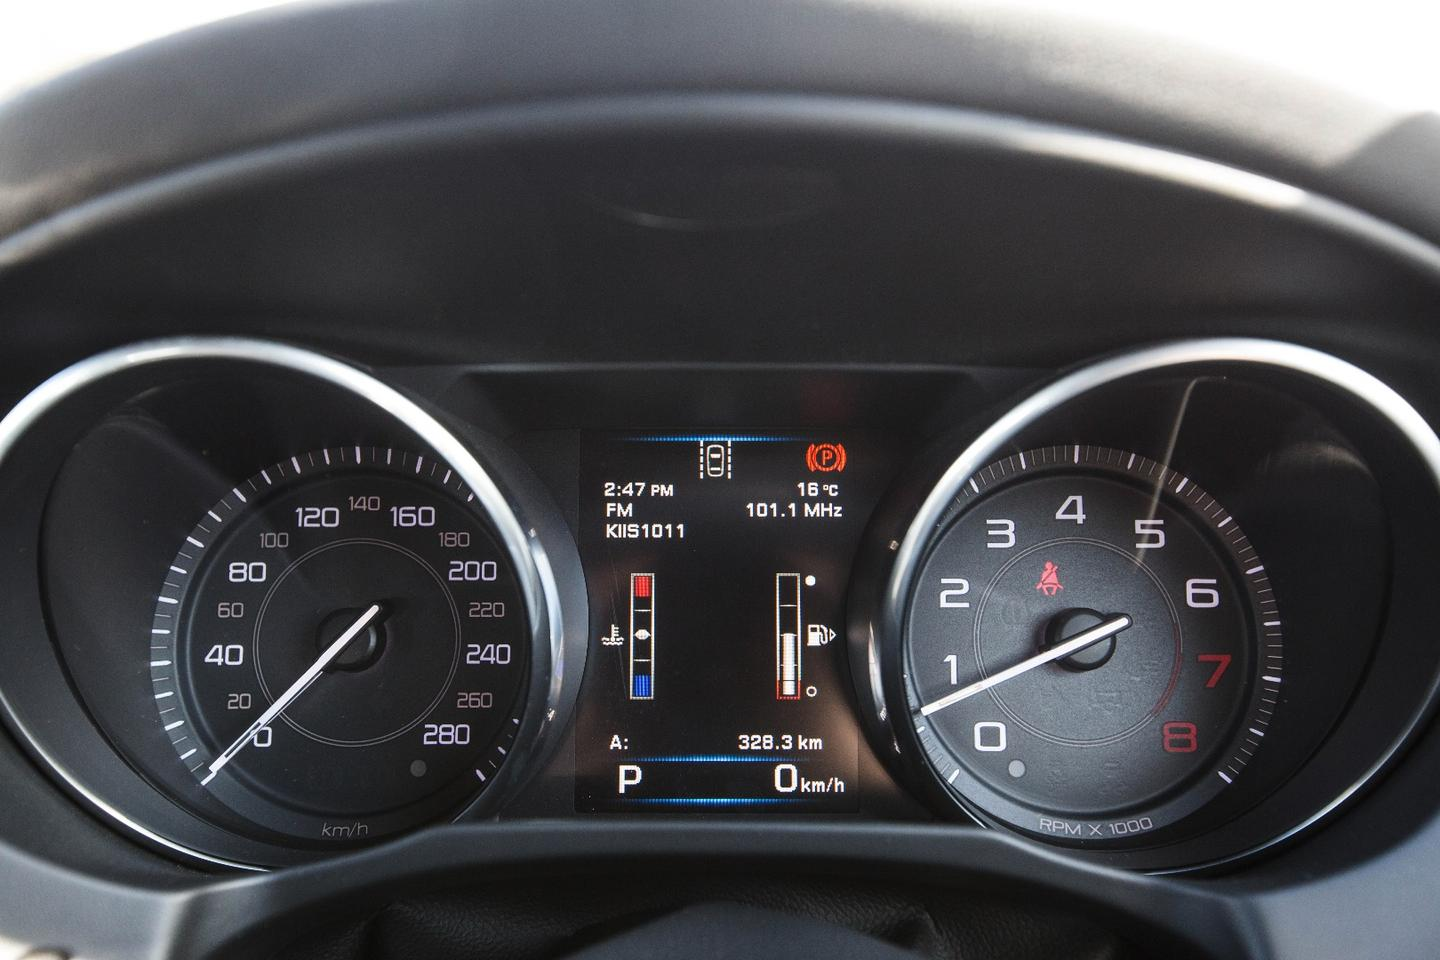 Flicking the car into dynamic mode turns the dials an angry shade of red